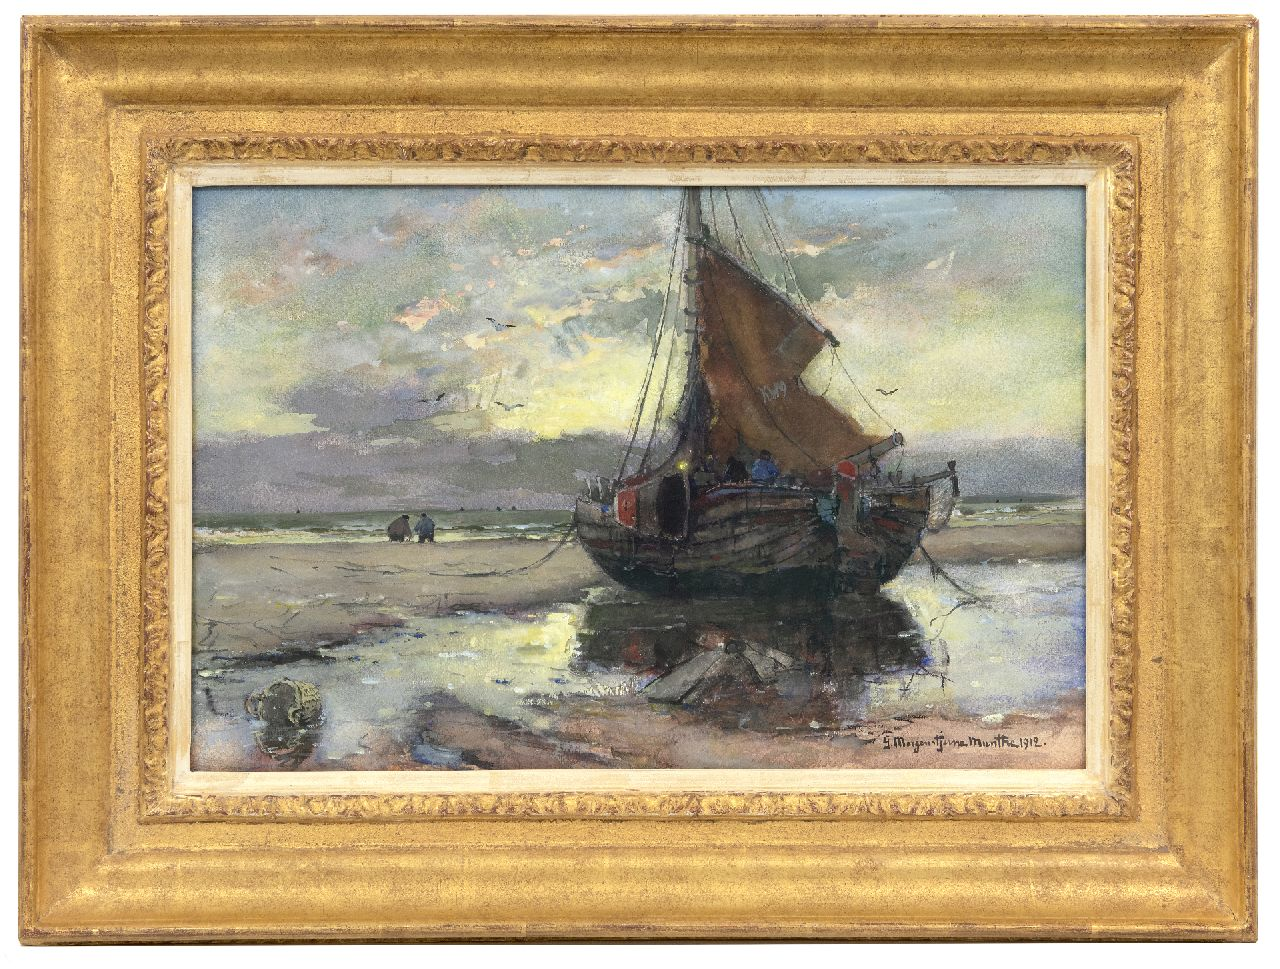 Munthe G.A.L.  | Gerhard Arij Ludwig 'Morgenstjerne' Munthe | Watercolours and other works on paper offered for sale | Fishing vessel on the beach, watercolour and gouache on paper 32.3 x 49.5 cm, signed l.r. and dated 1912